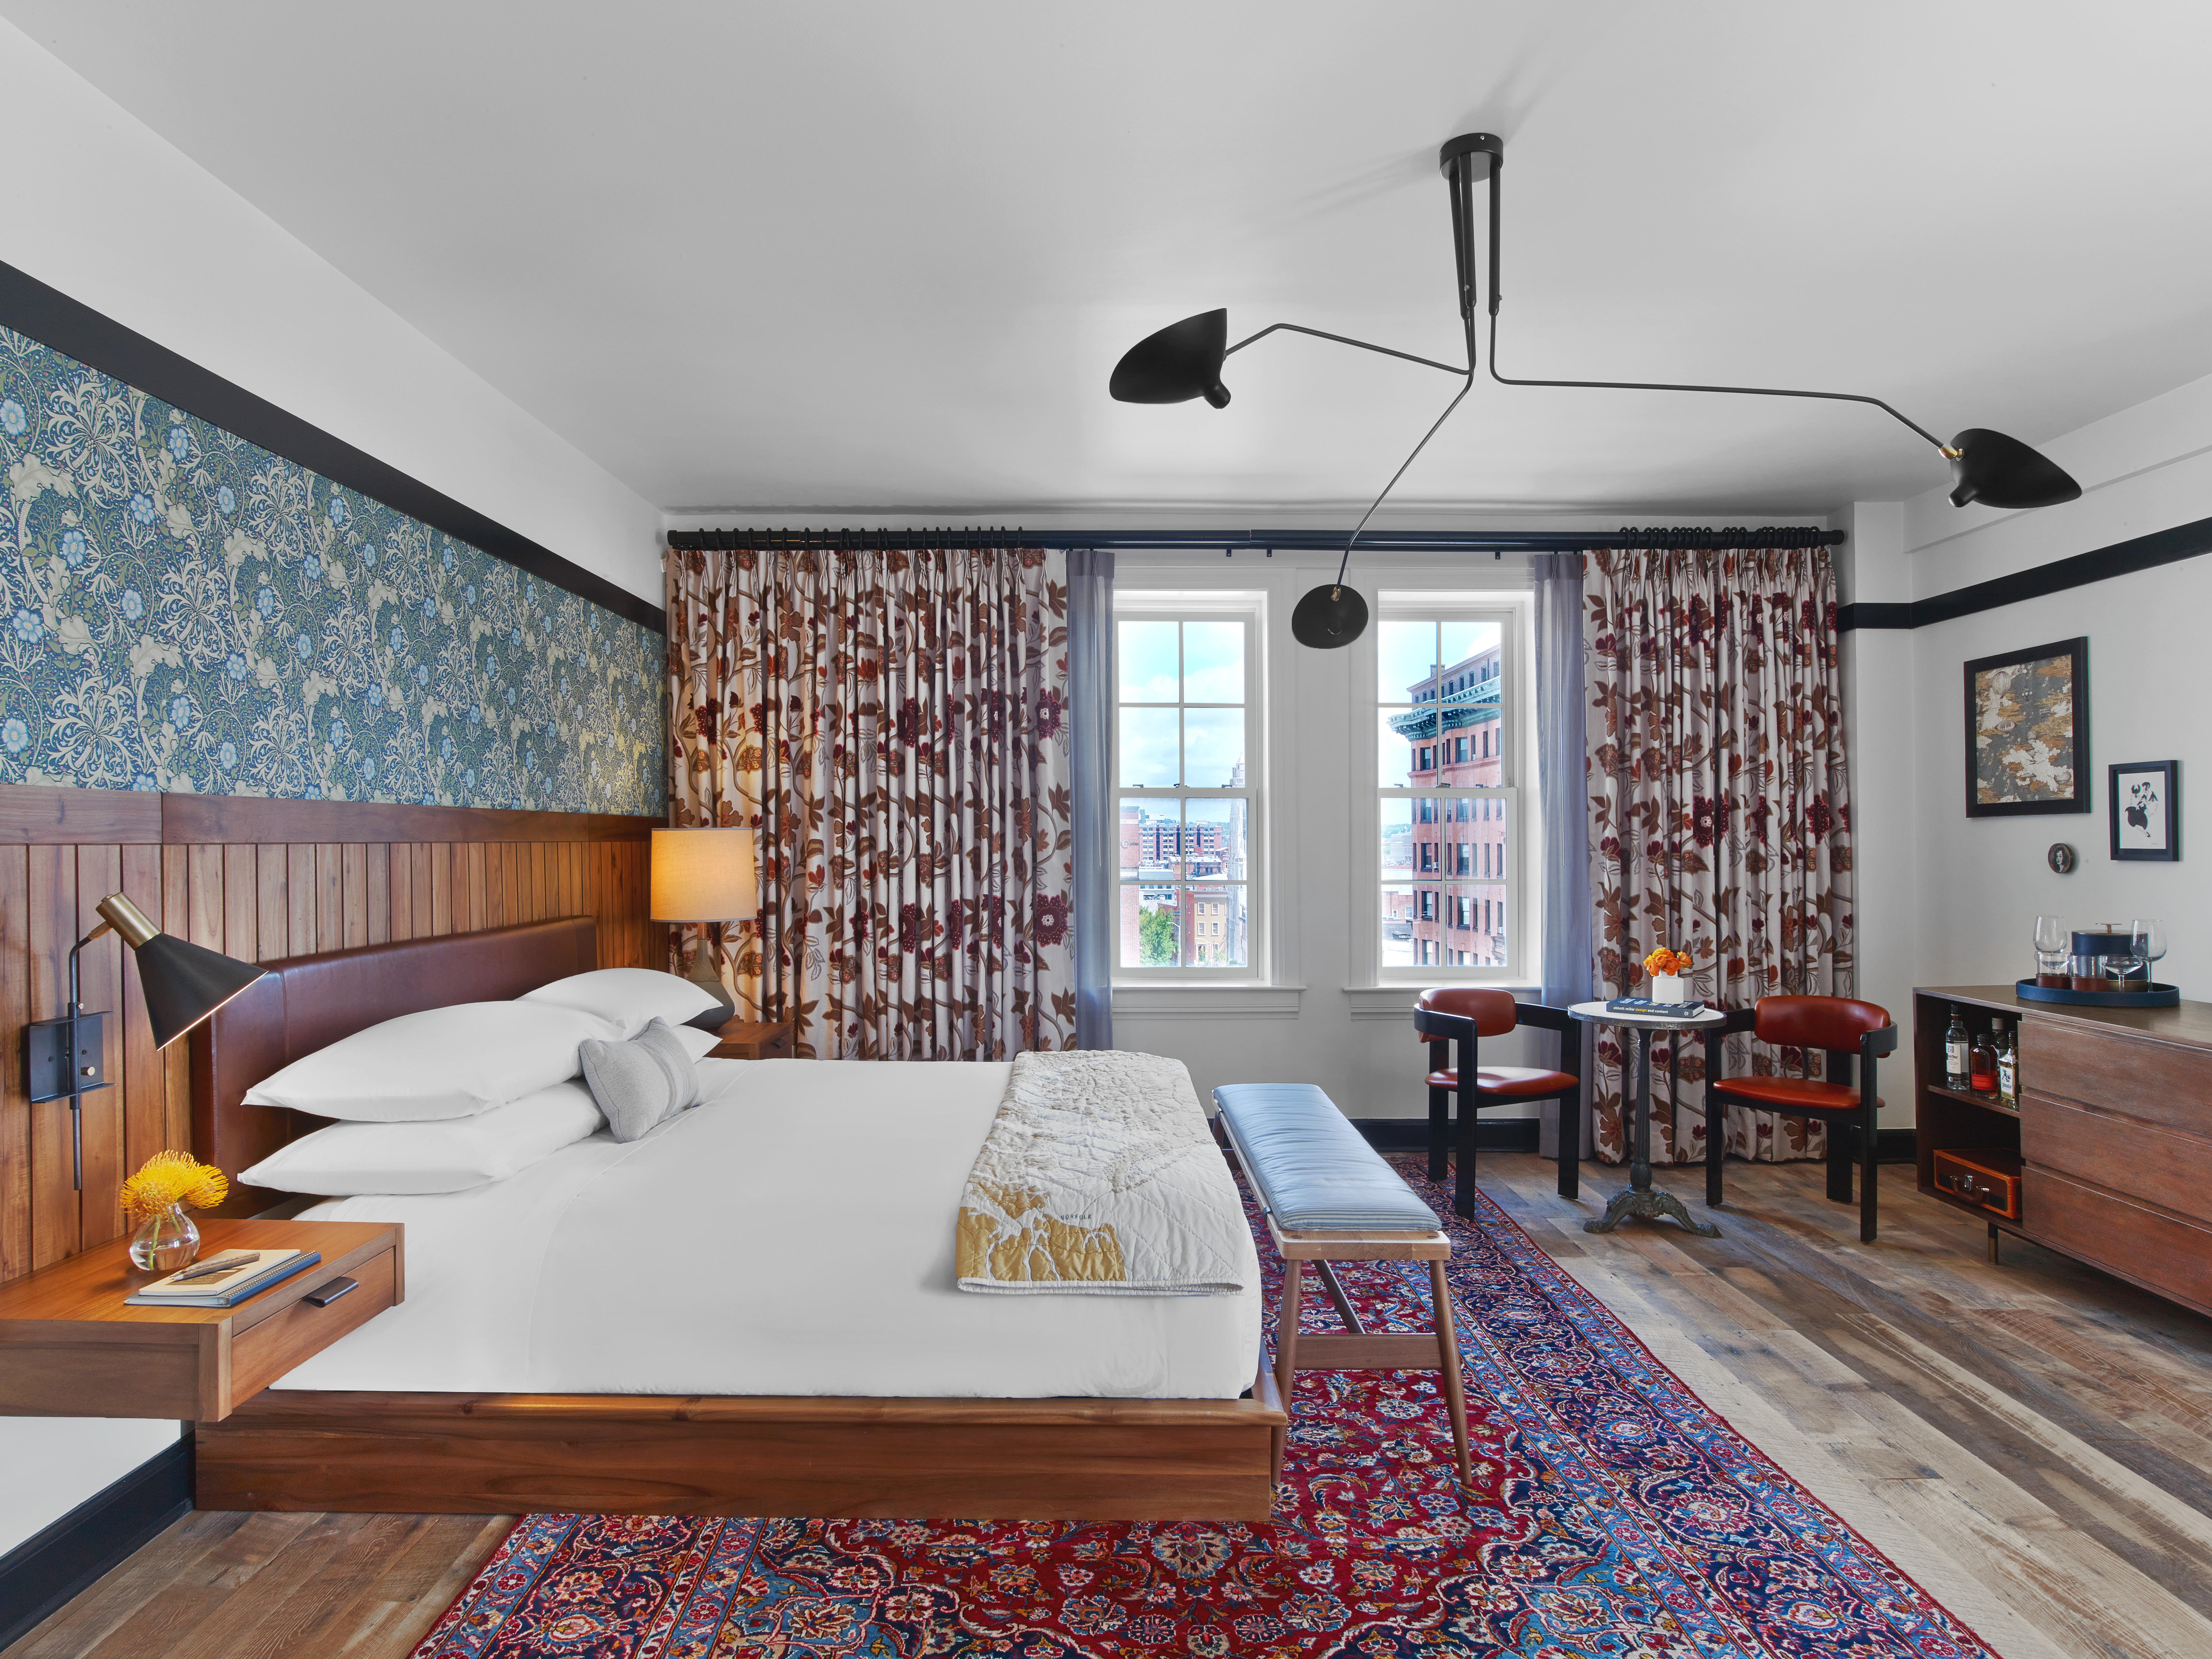 A premium junior suite at Hotel Revival shows off the delightfully quirky decor.{ }(Image: Courtesy Hotel Revival)